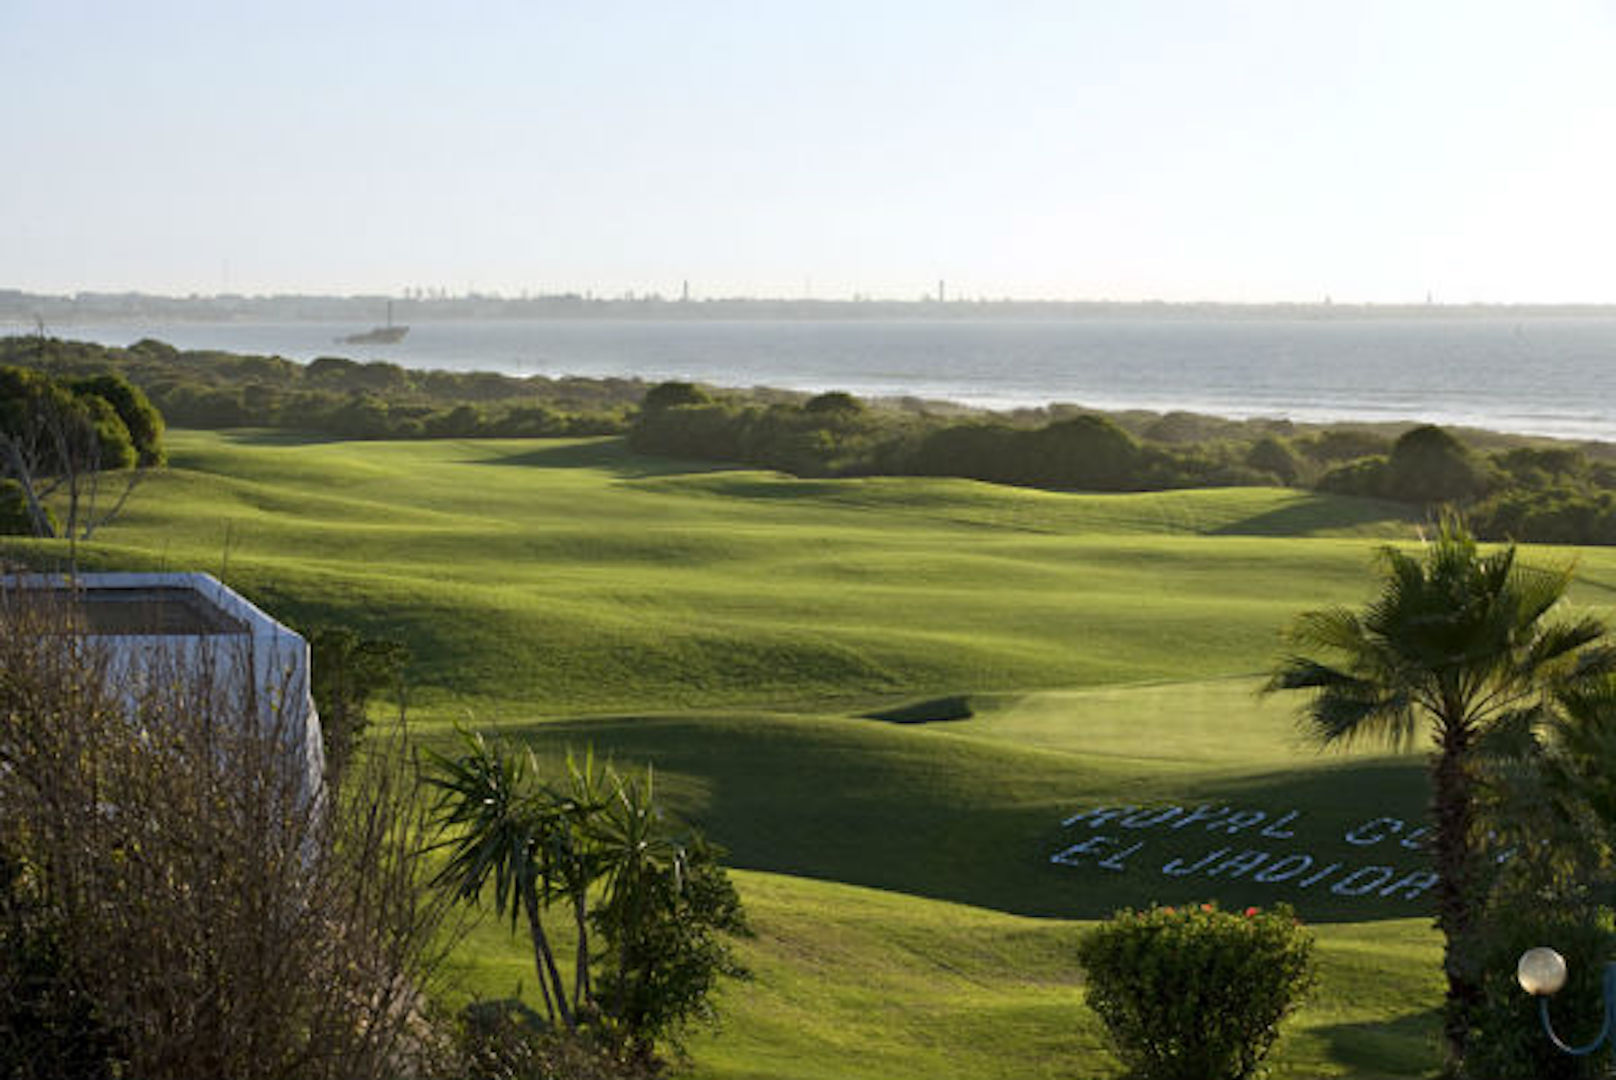 Mazagan Beach & Golf Resort announces new partnerships